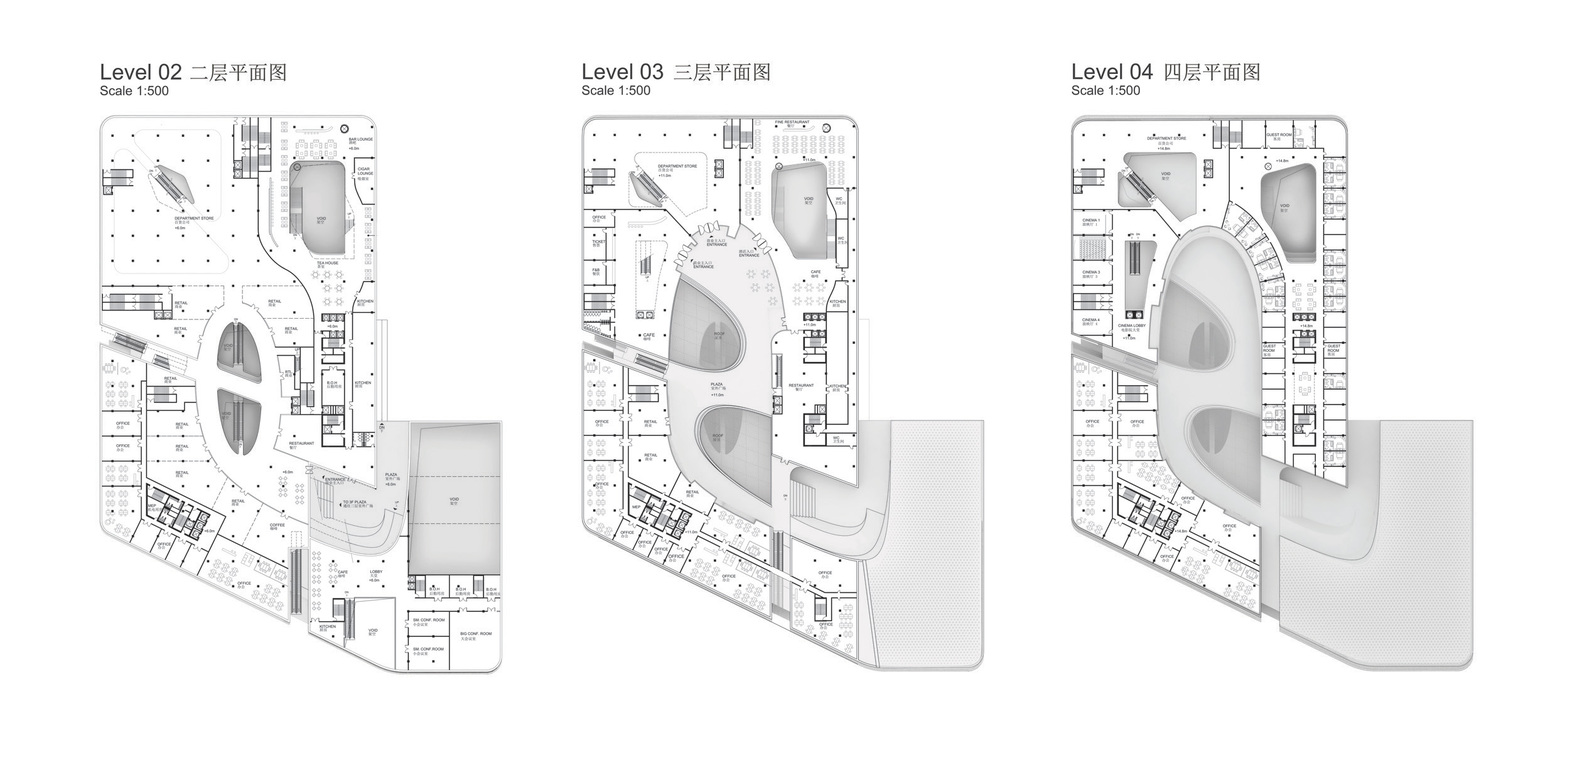 South West Hotel Compeion Proposal Henn Architects Plans